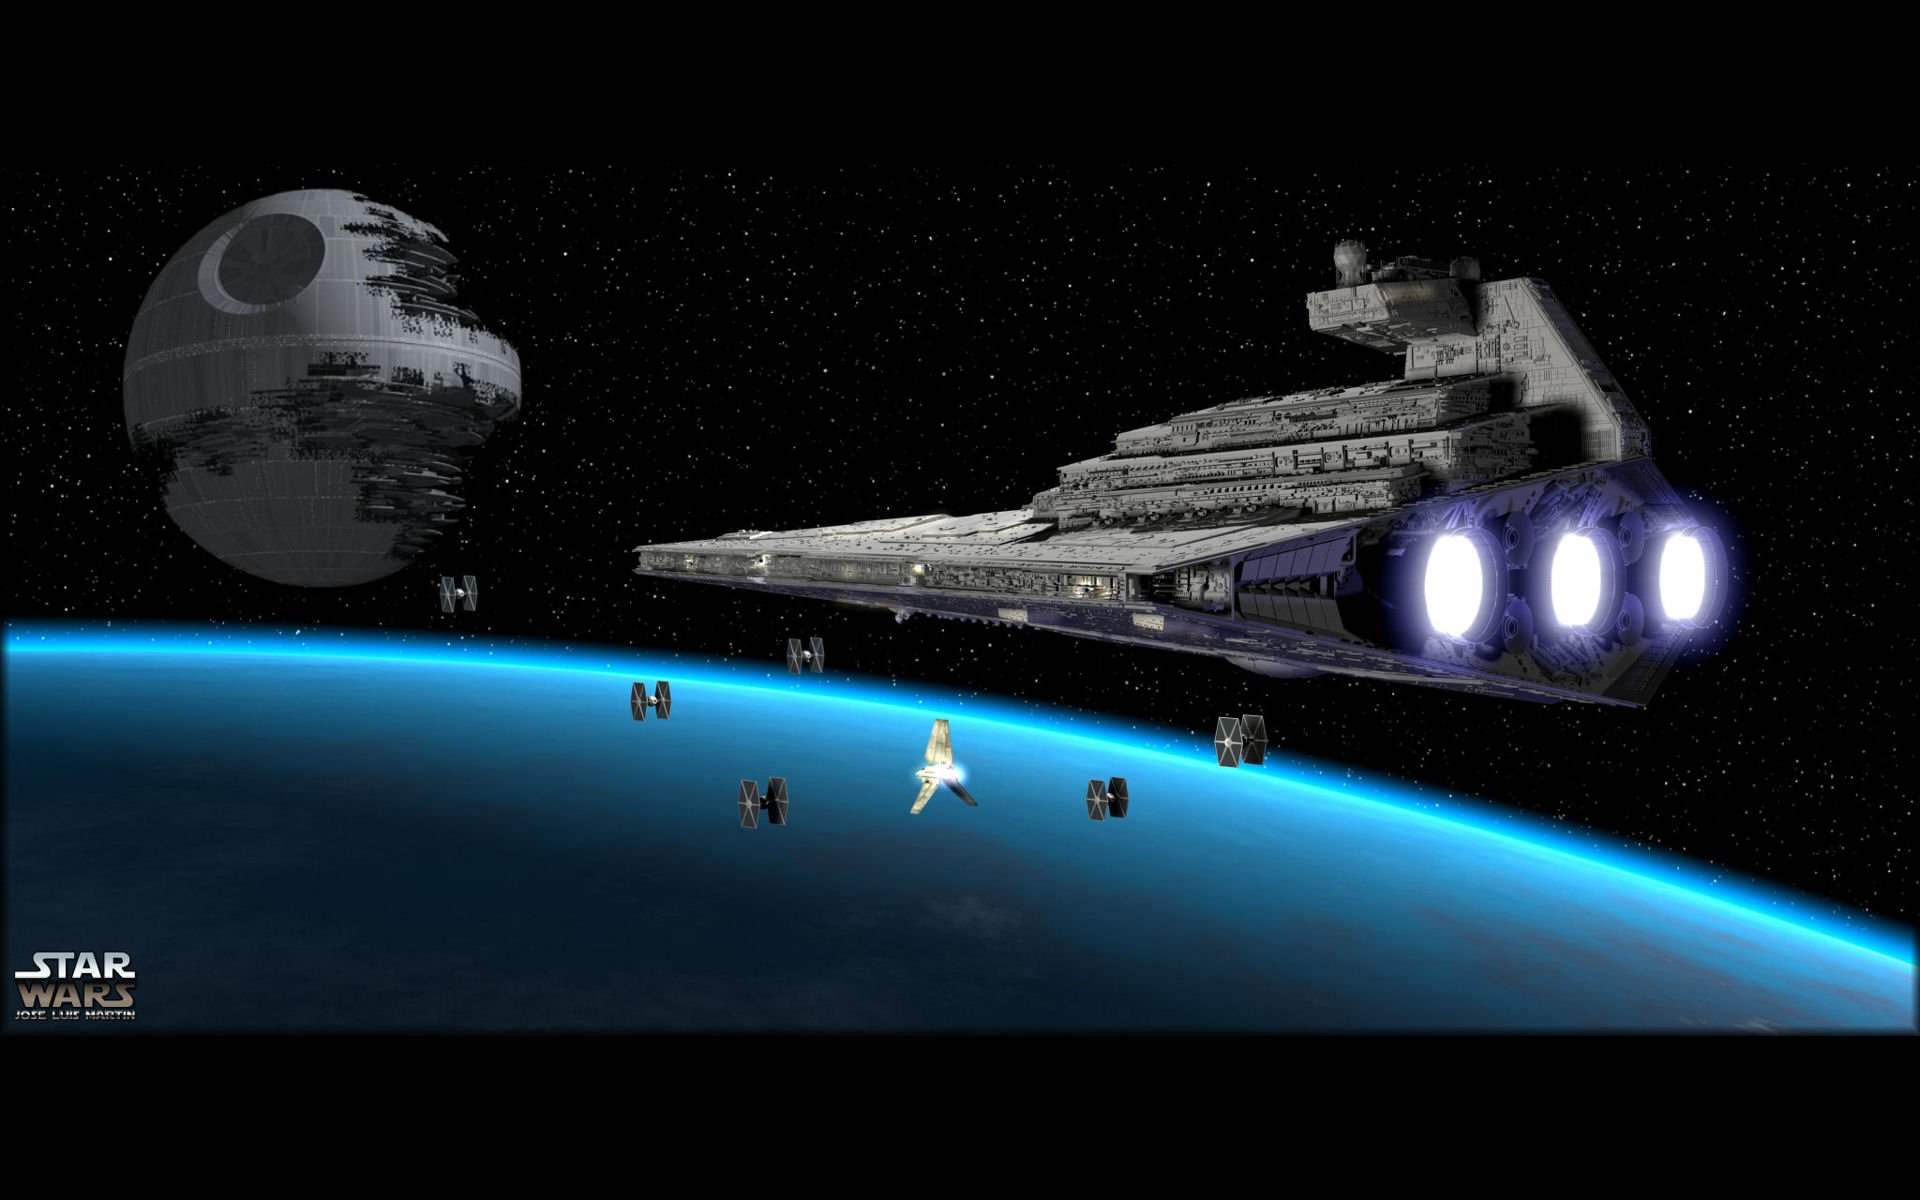 tags star star wars date 13 06 14 resolution 1920x1200 avg dl time 0 1920x1200